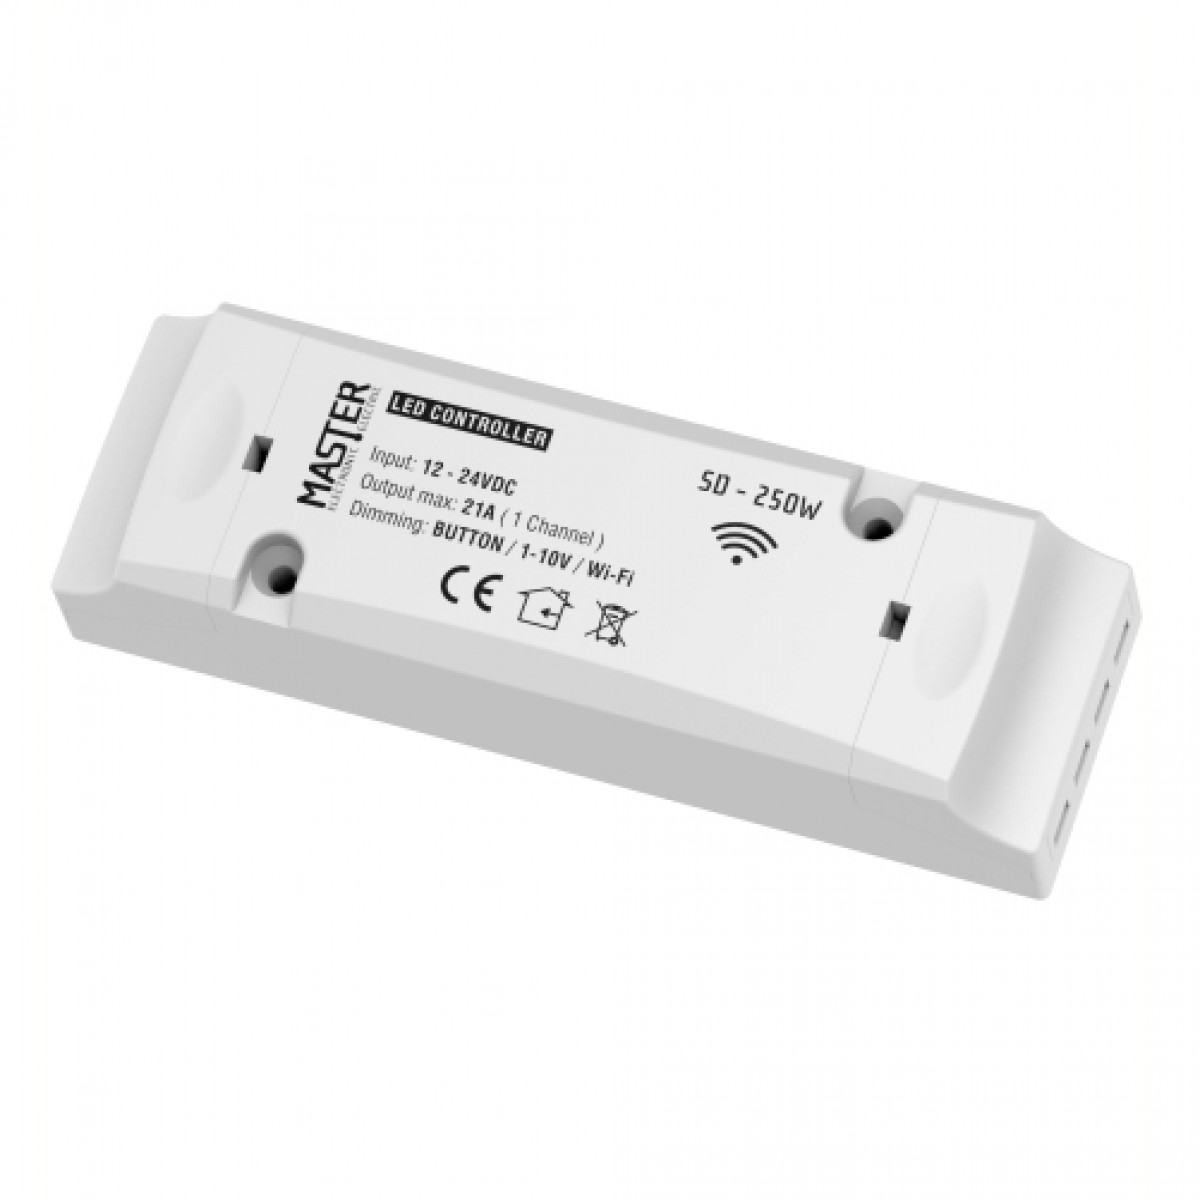 LED CONTROLLER 12-24 VDC / 21A 1CHANNEL SD-250W